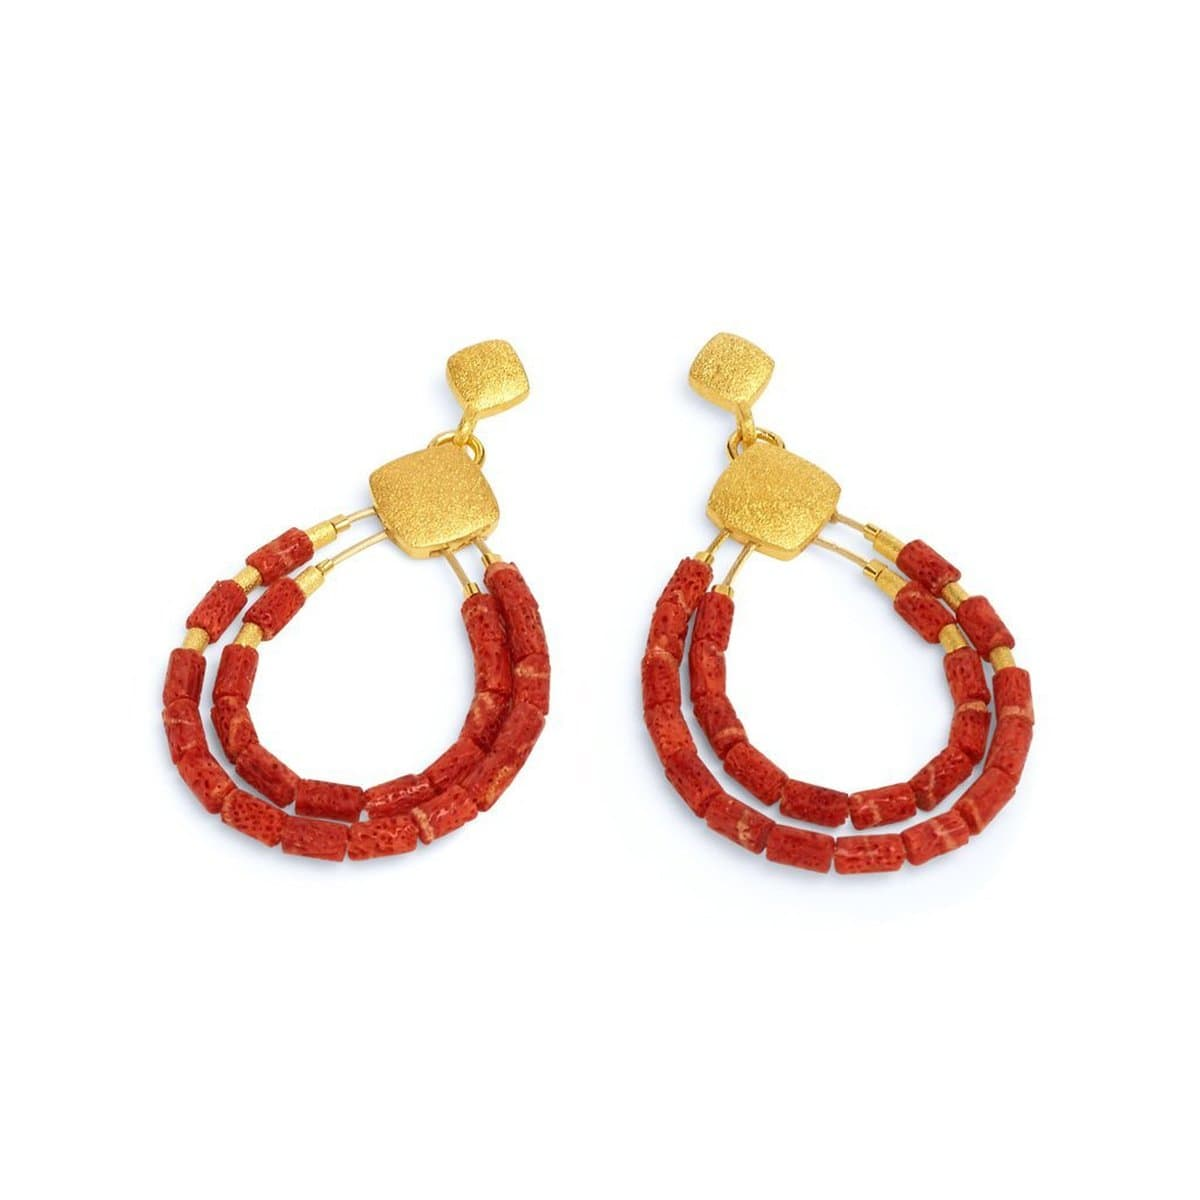 Clini Red Coral Earrings - 15576296-Bernd Wolf-Renee Taylor Gallery